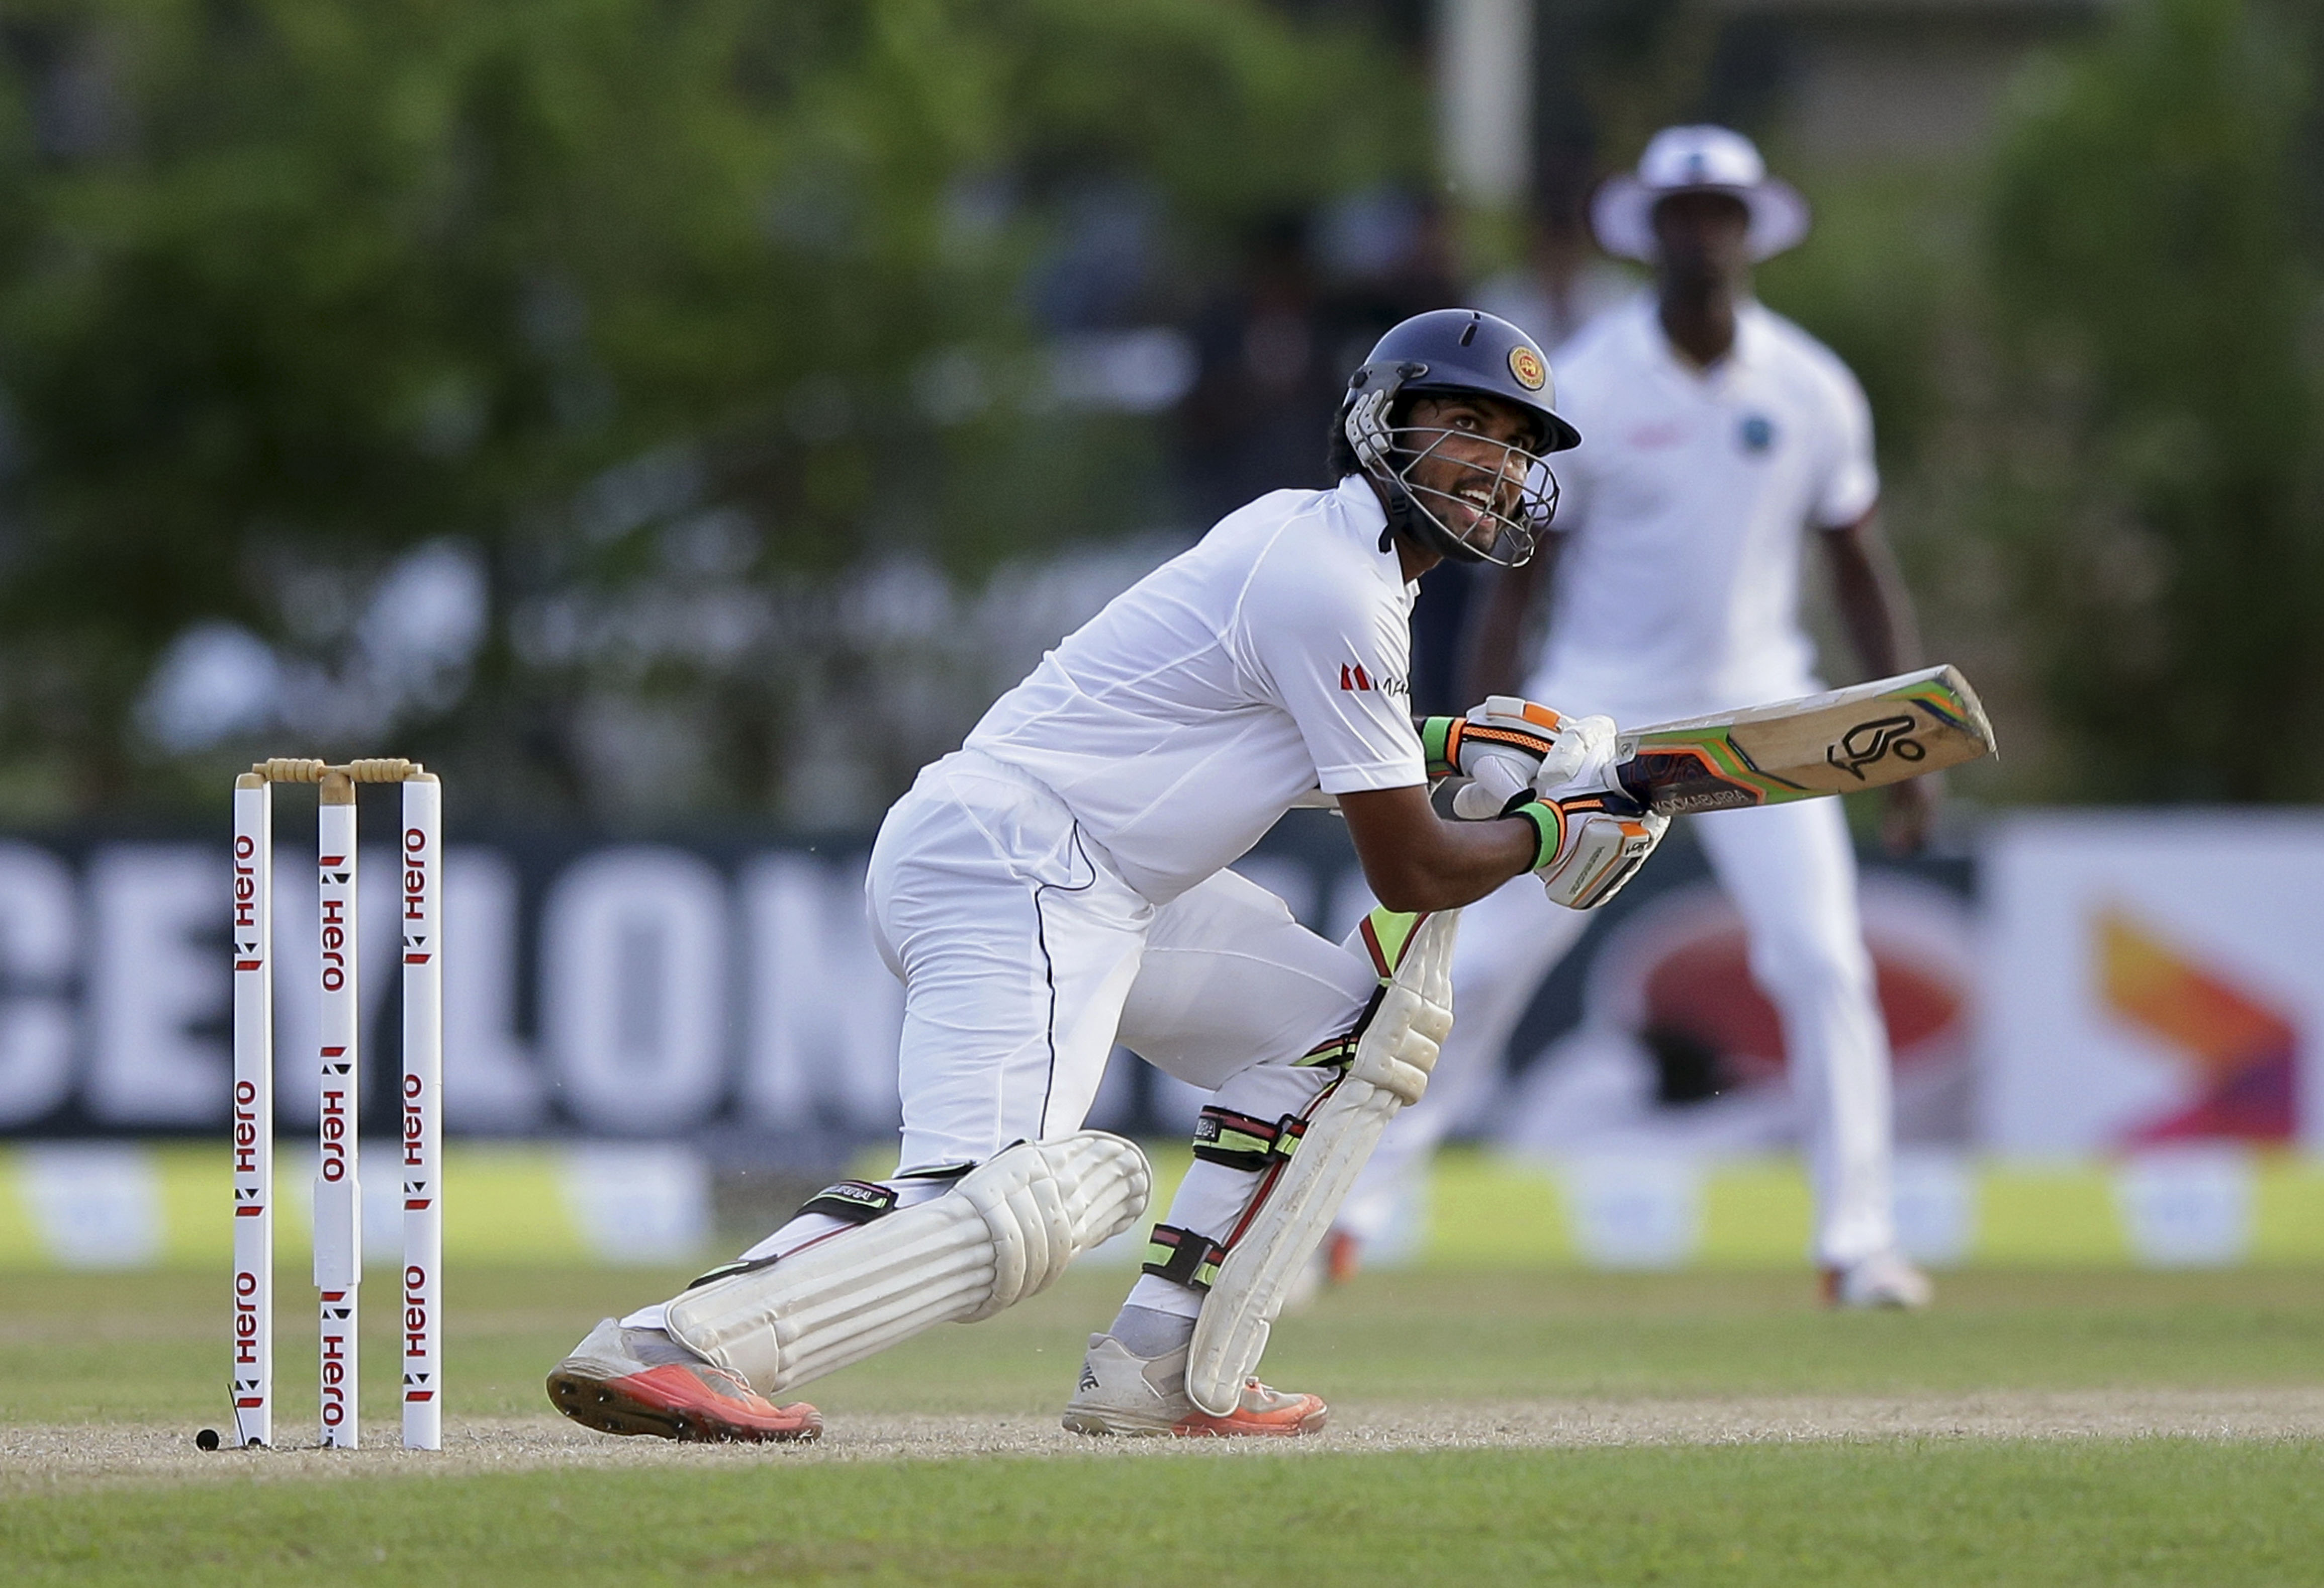 Sri Lanka's Dinesh Chandimal plays a shot during the first day of the first test cricket match against West Indies in Galle, Sri Lanka, Wednesday, Oct.14, 2015. (AP Photo/Pamod Nilru)